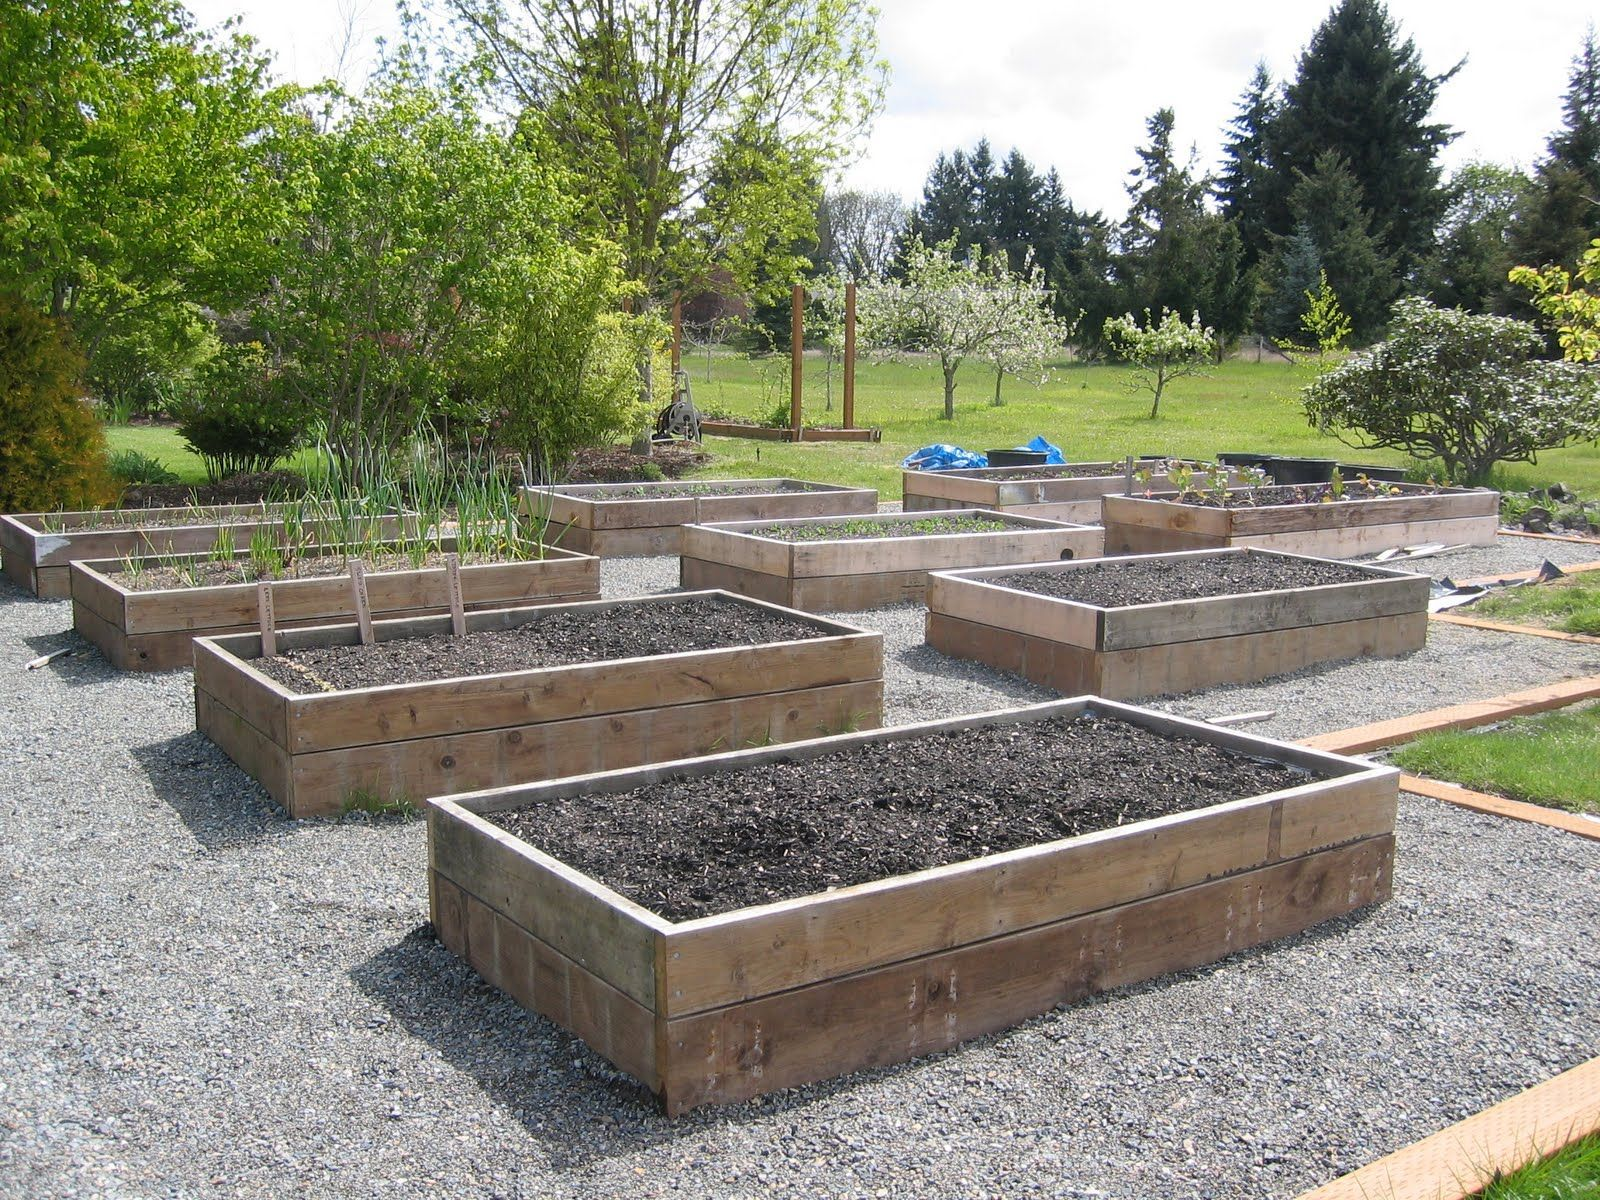 raised beds vegetable gardens construction how to build raised vegetable garden woodworking project plans - How To Build A Raised Vegetable Garden